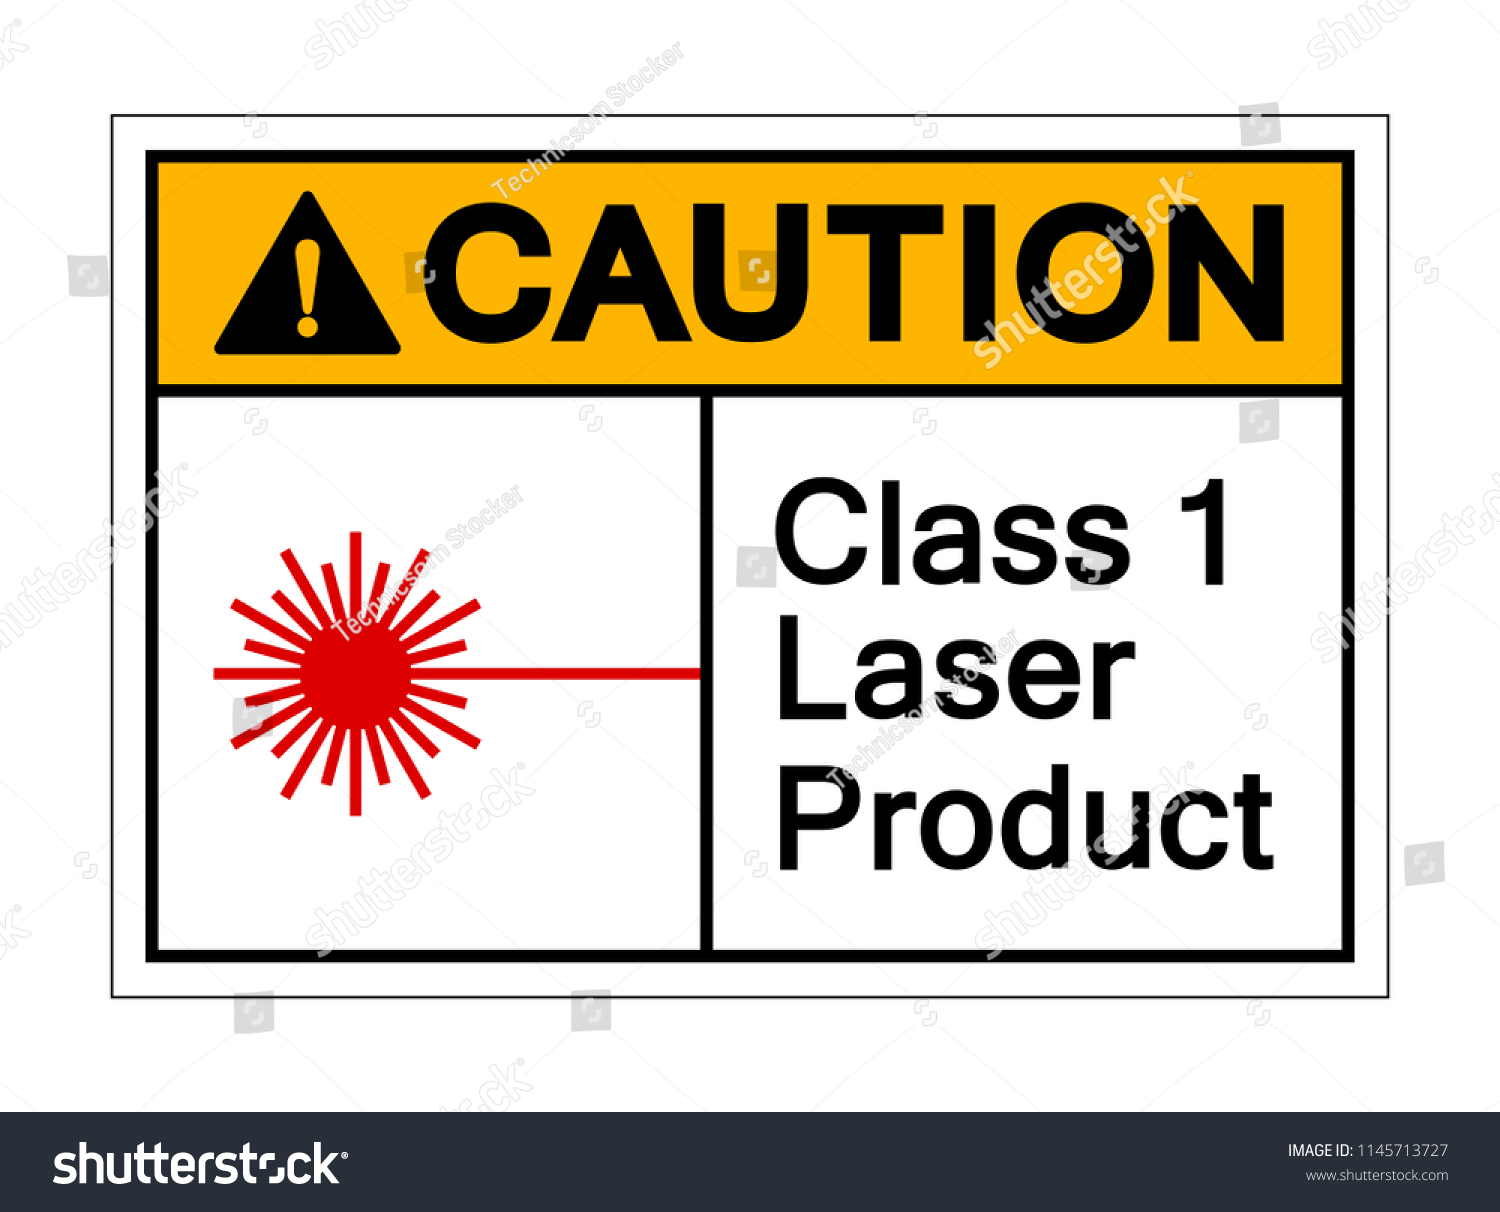 Caution Class 1 Laser Product Symbol Stock Vector Royalty Free